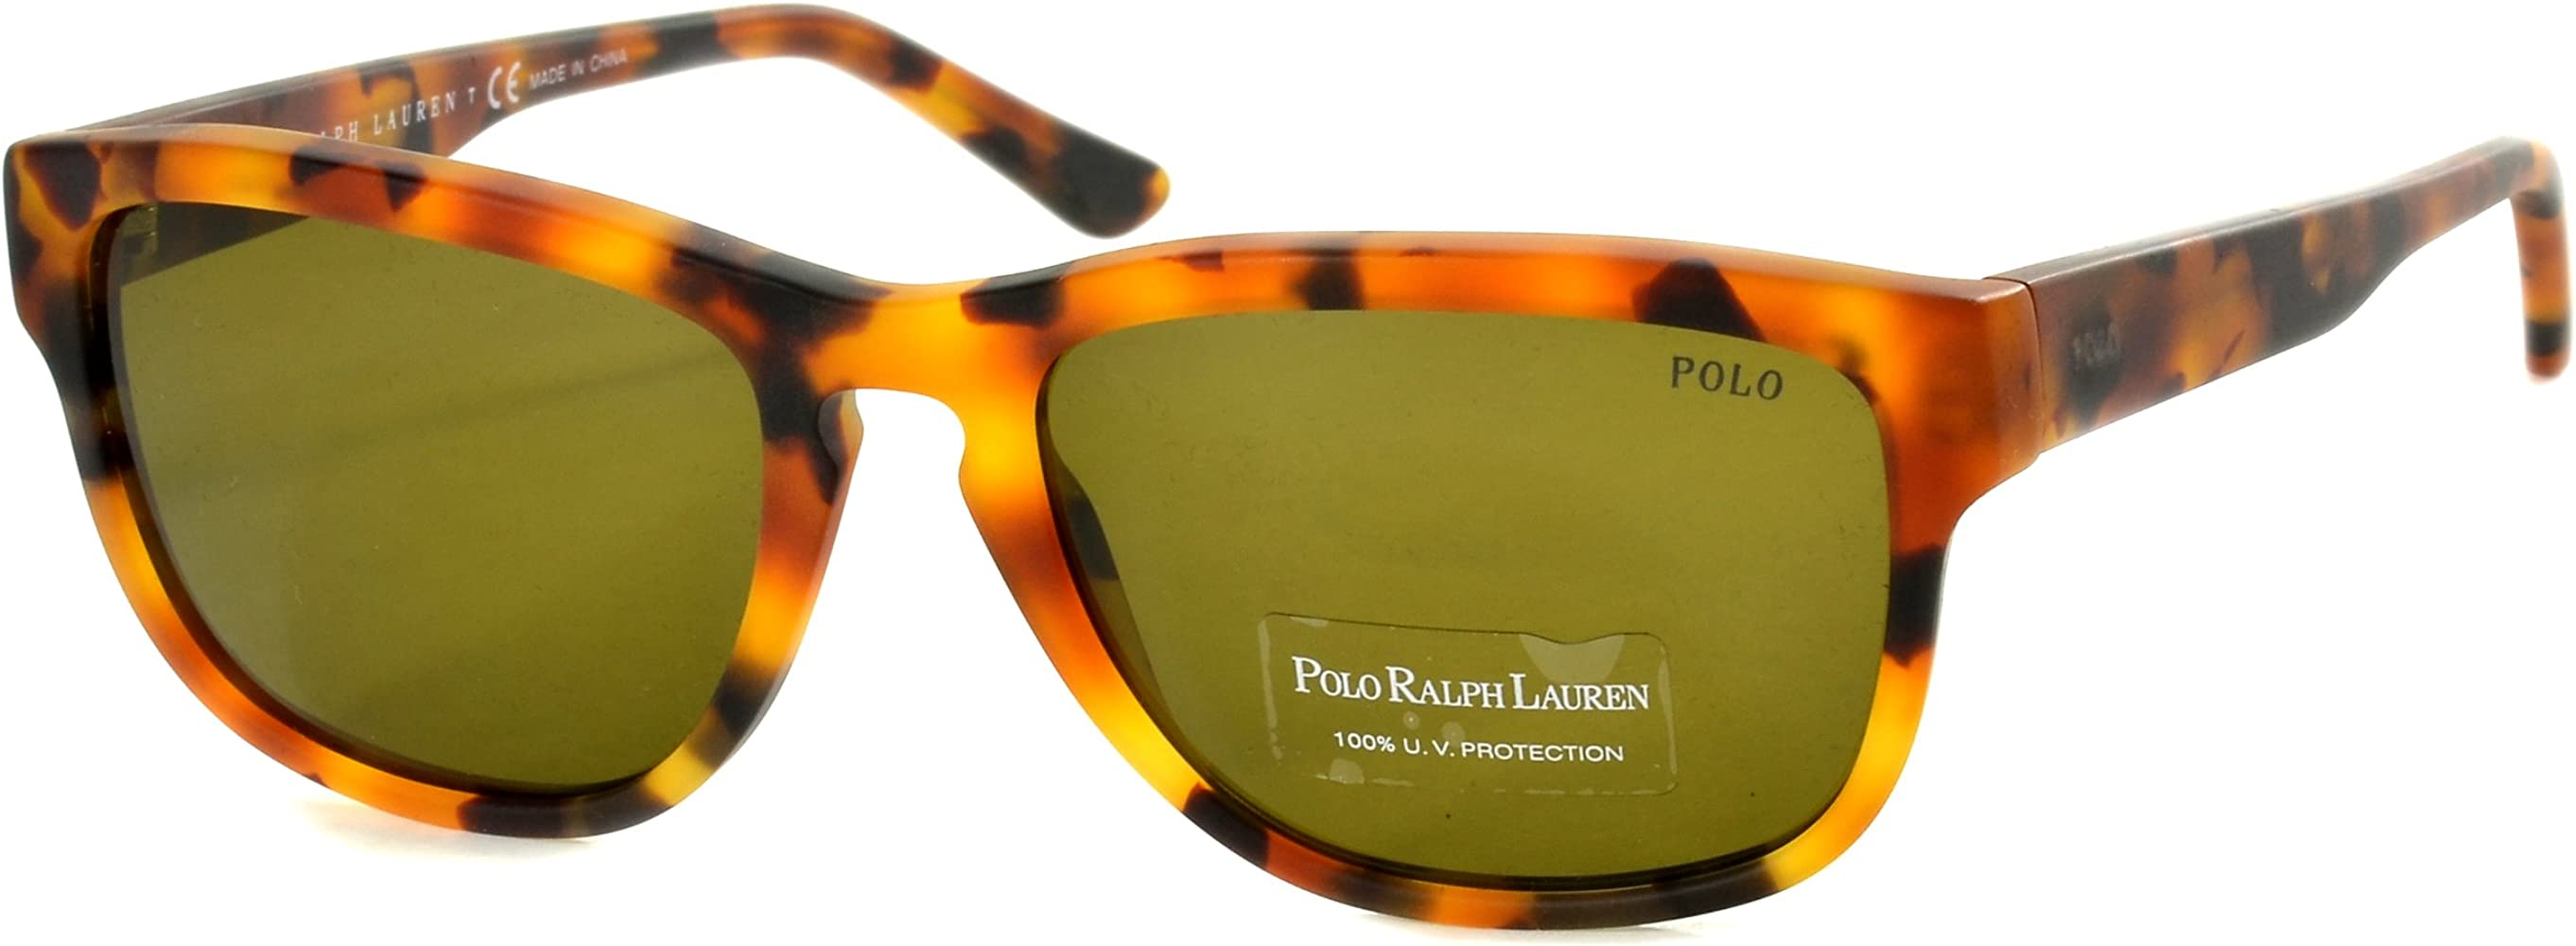 Ralph Lauren Gafas de Sol Polo PH4053: Amazon.es: Ropa y accesorios